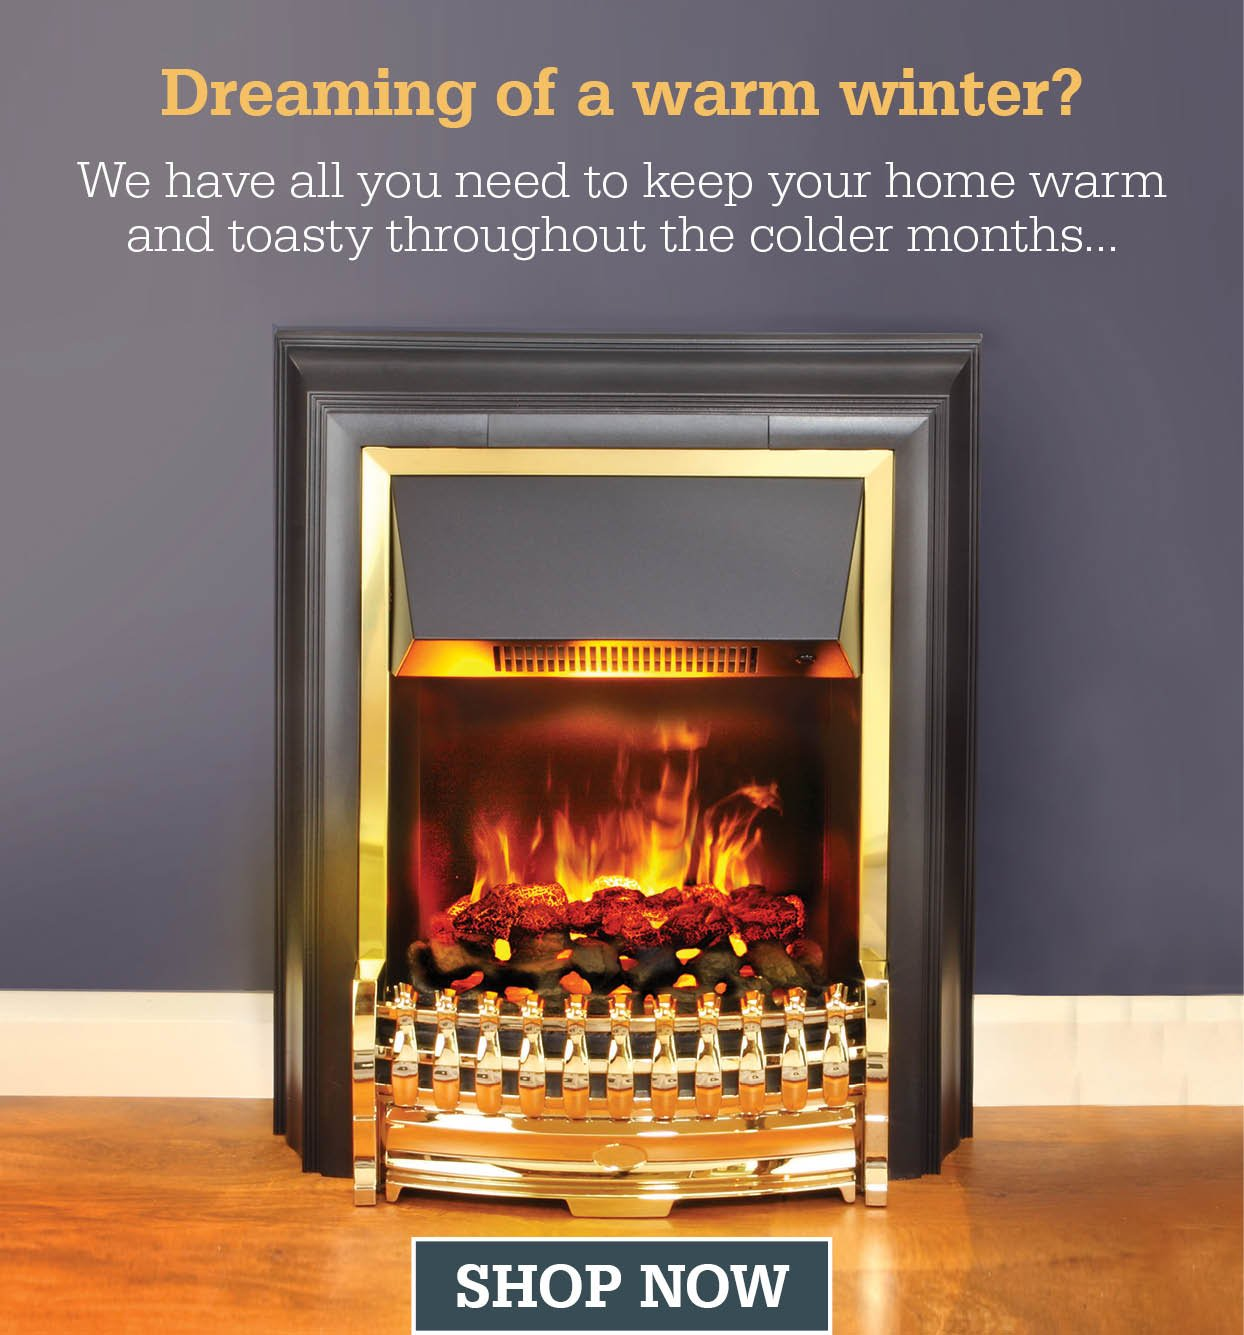 Dreaming of a warm winter?